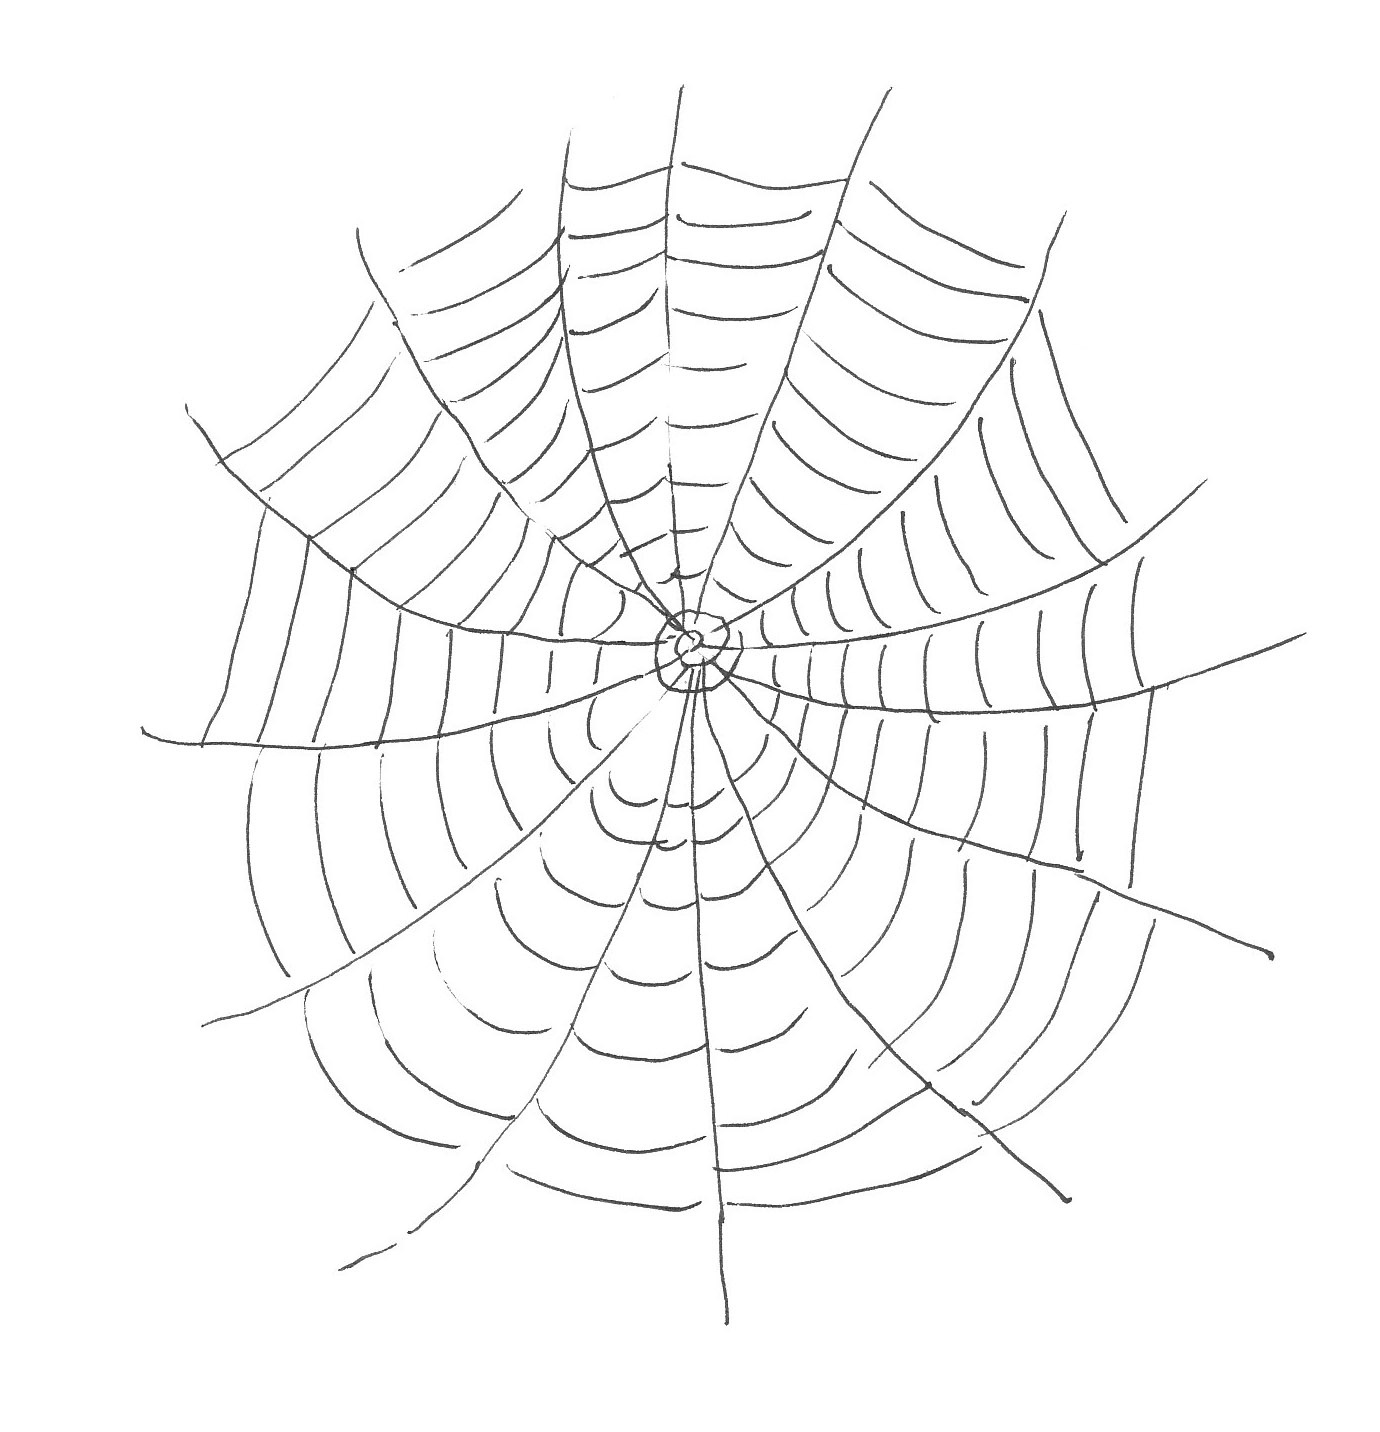 Free Printable Spider Web Coloring Pages For Kids - Free Printable Spider Web